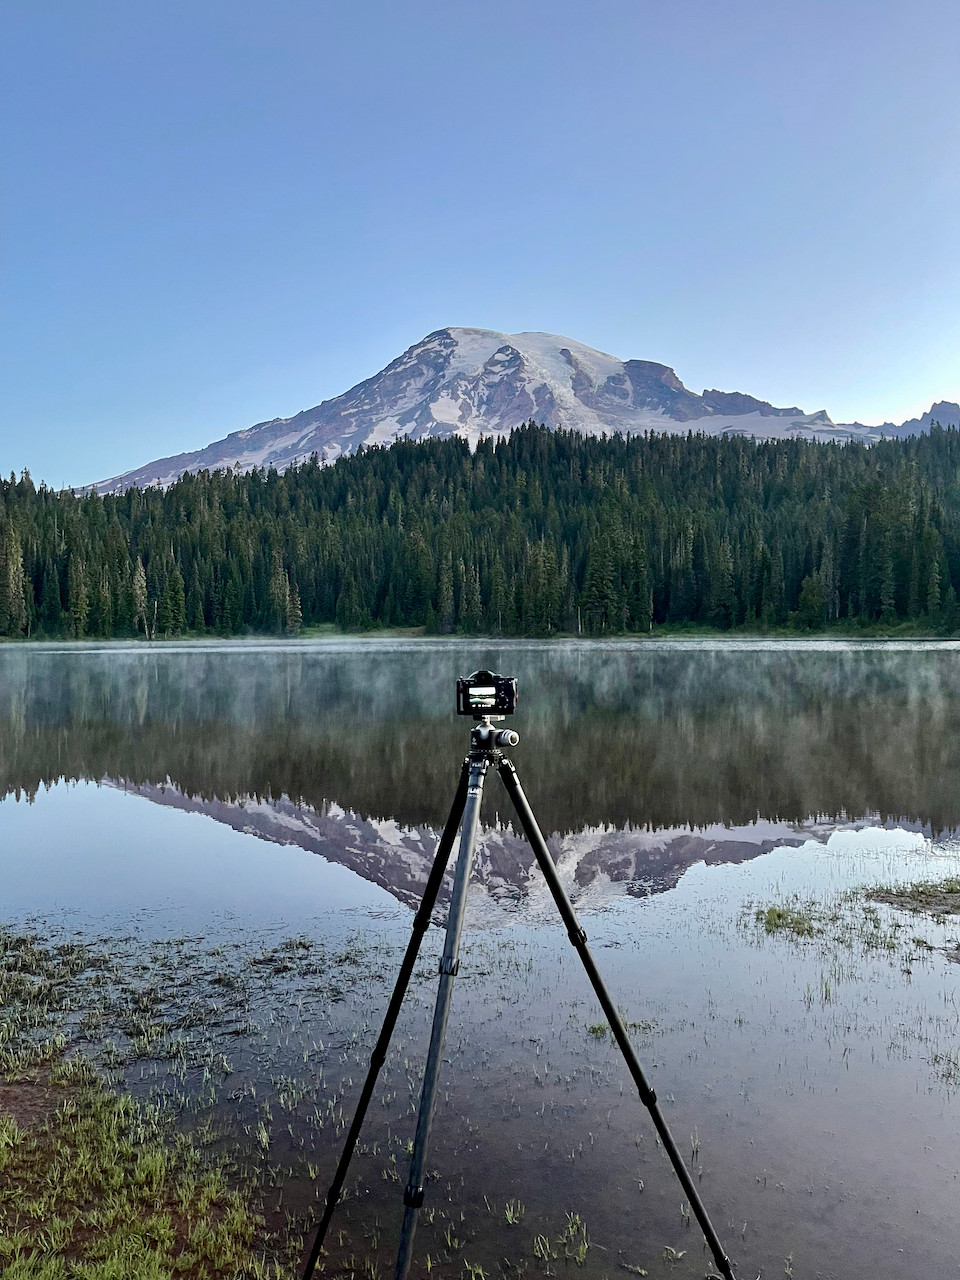 A camera mounted on a tripod at the shore of a crystal clear reflective lake, photographing the glory of the enormous mountain rising above the trees on the opposite shore - and the reflection of all of this in the water below